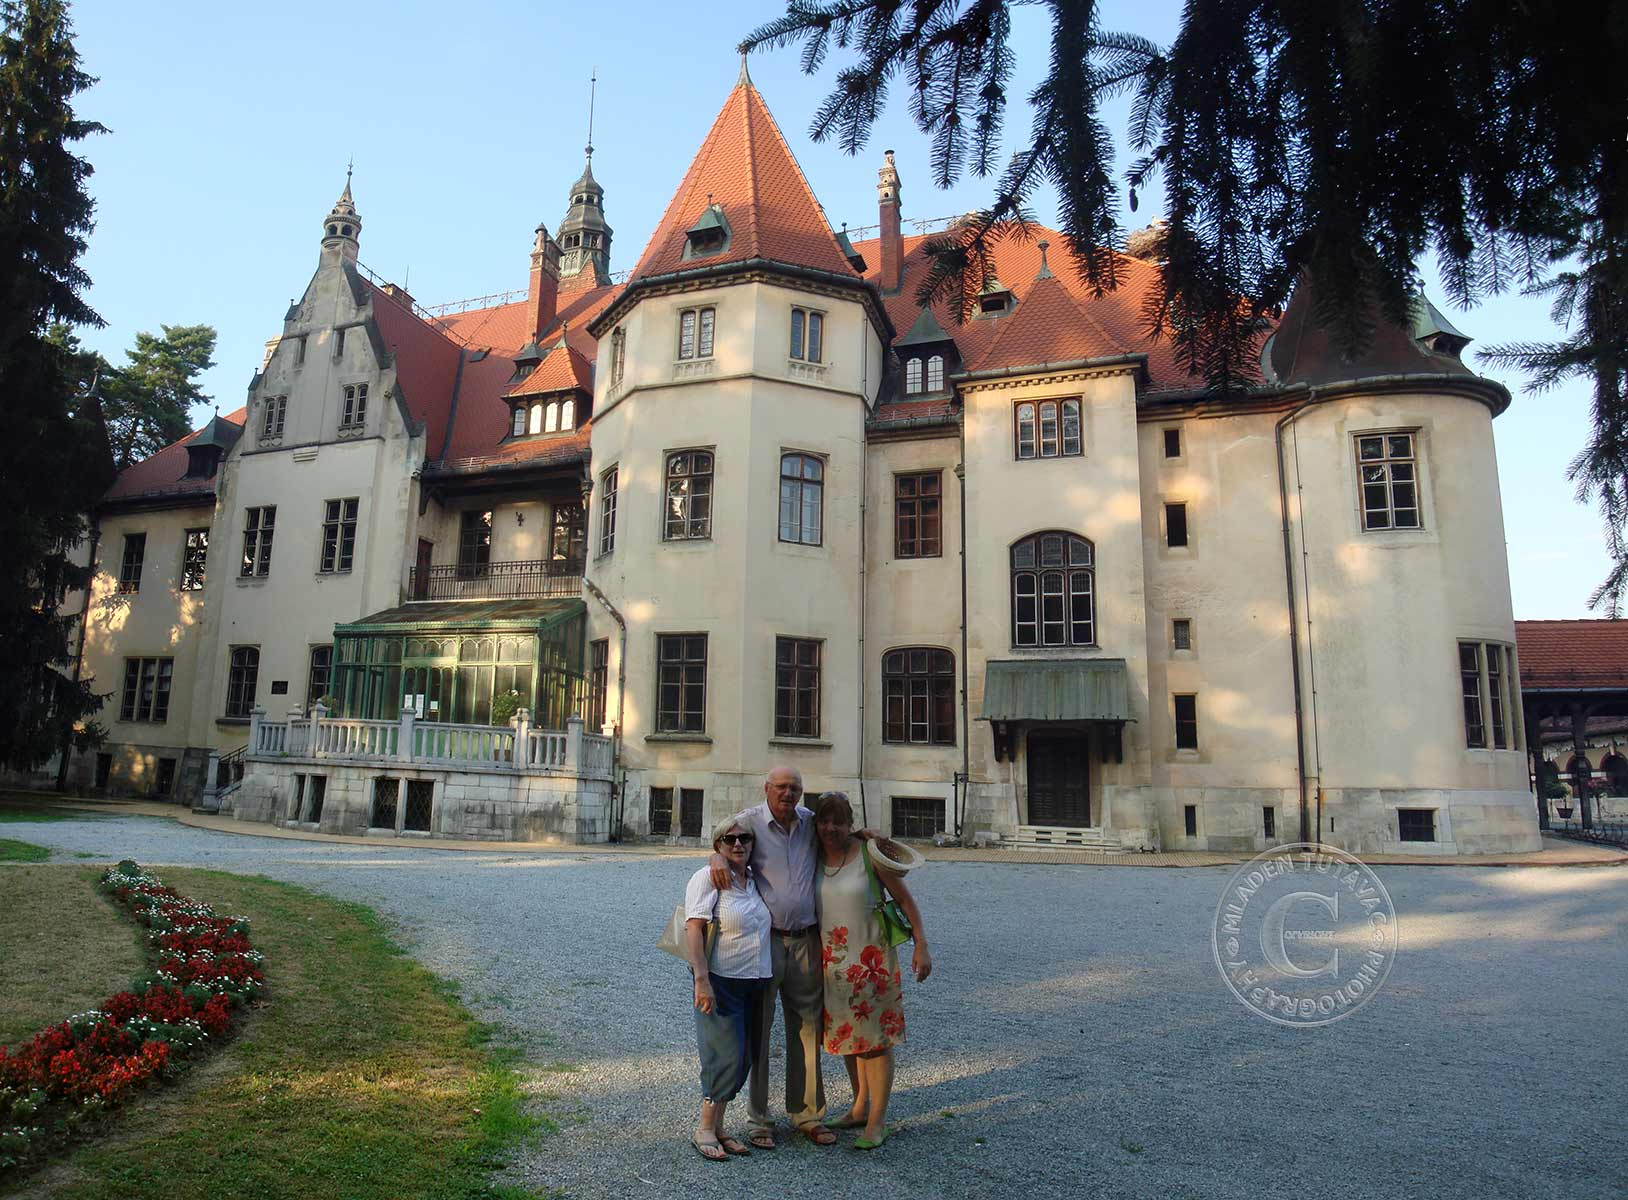 tour guide:The Mailath castle in Donji Miholjac